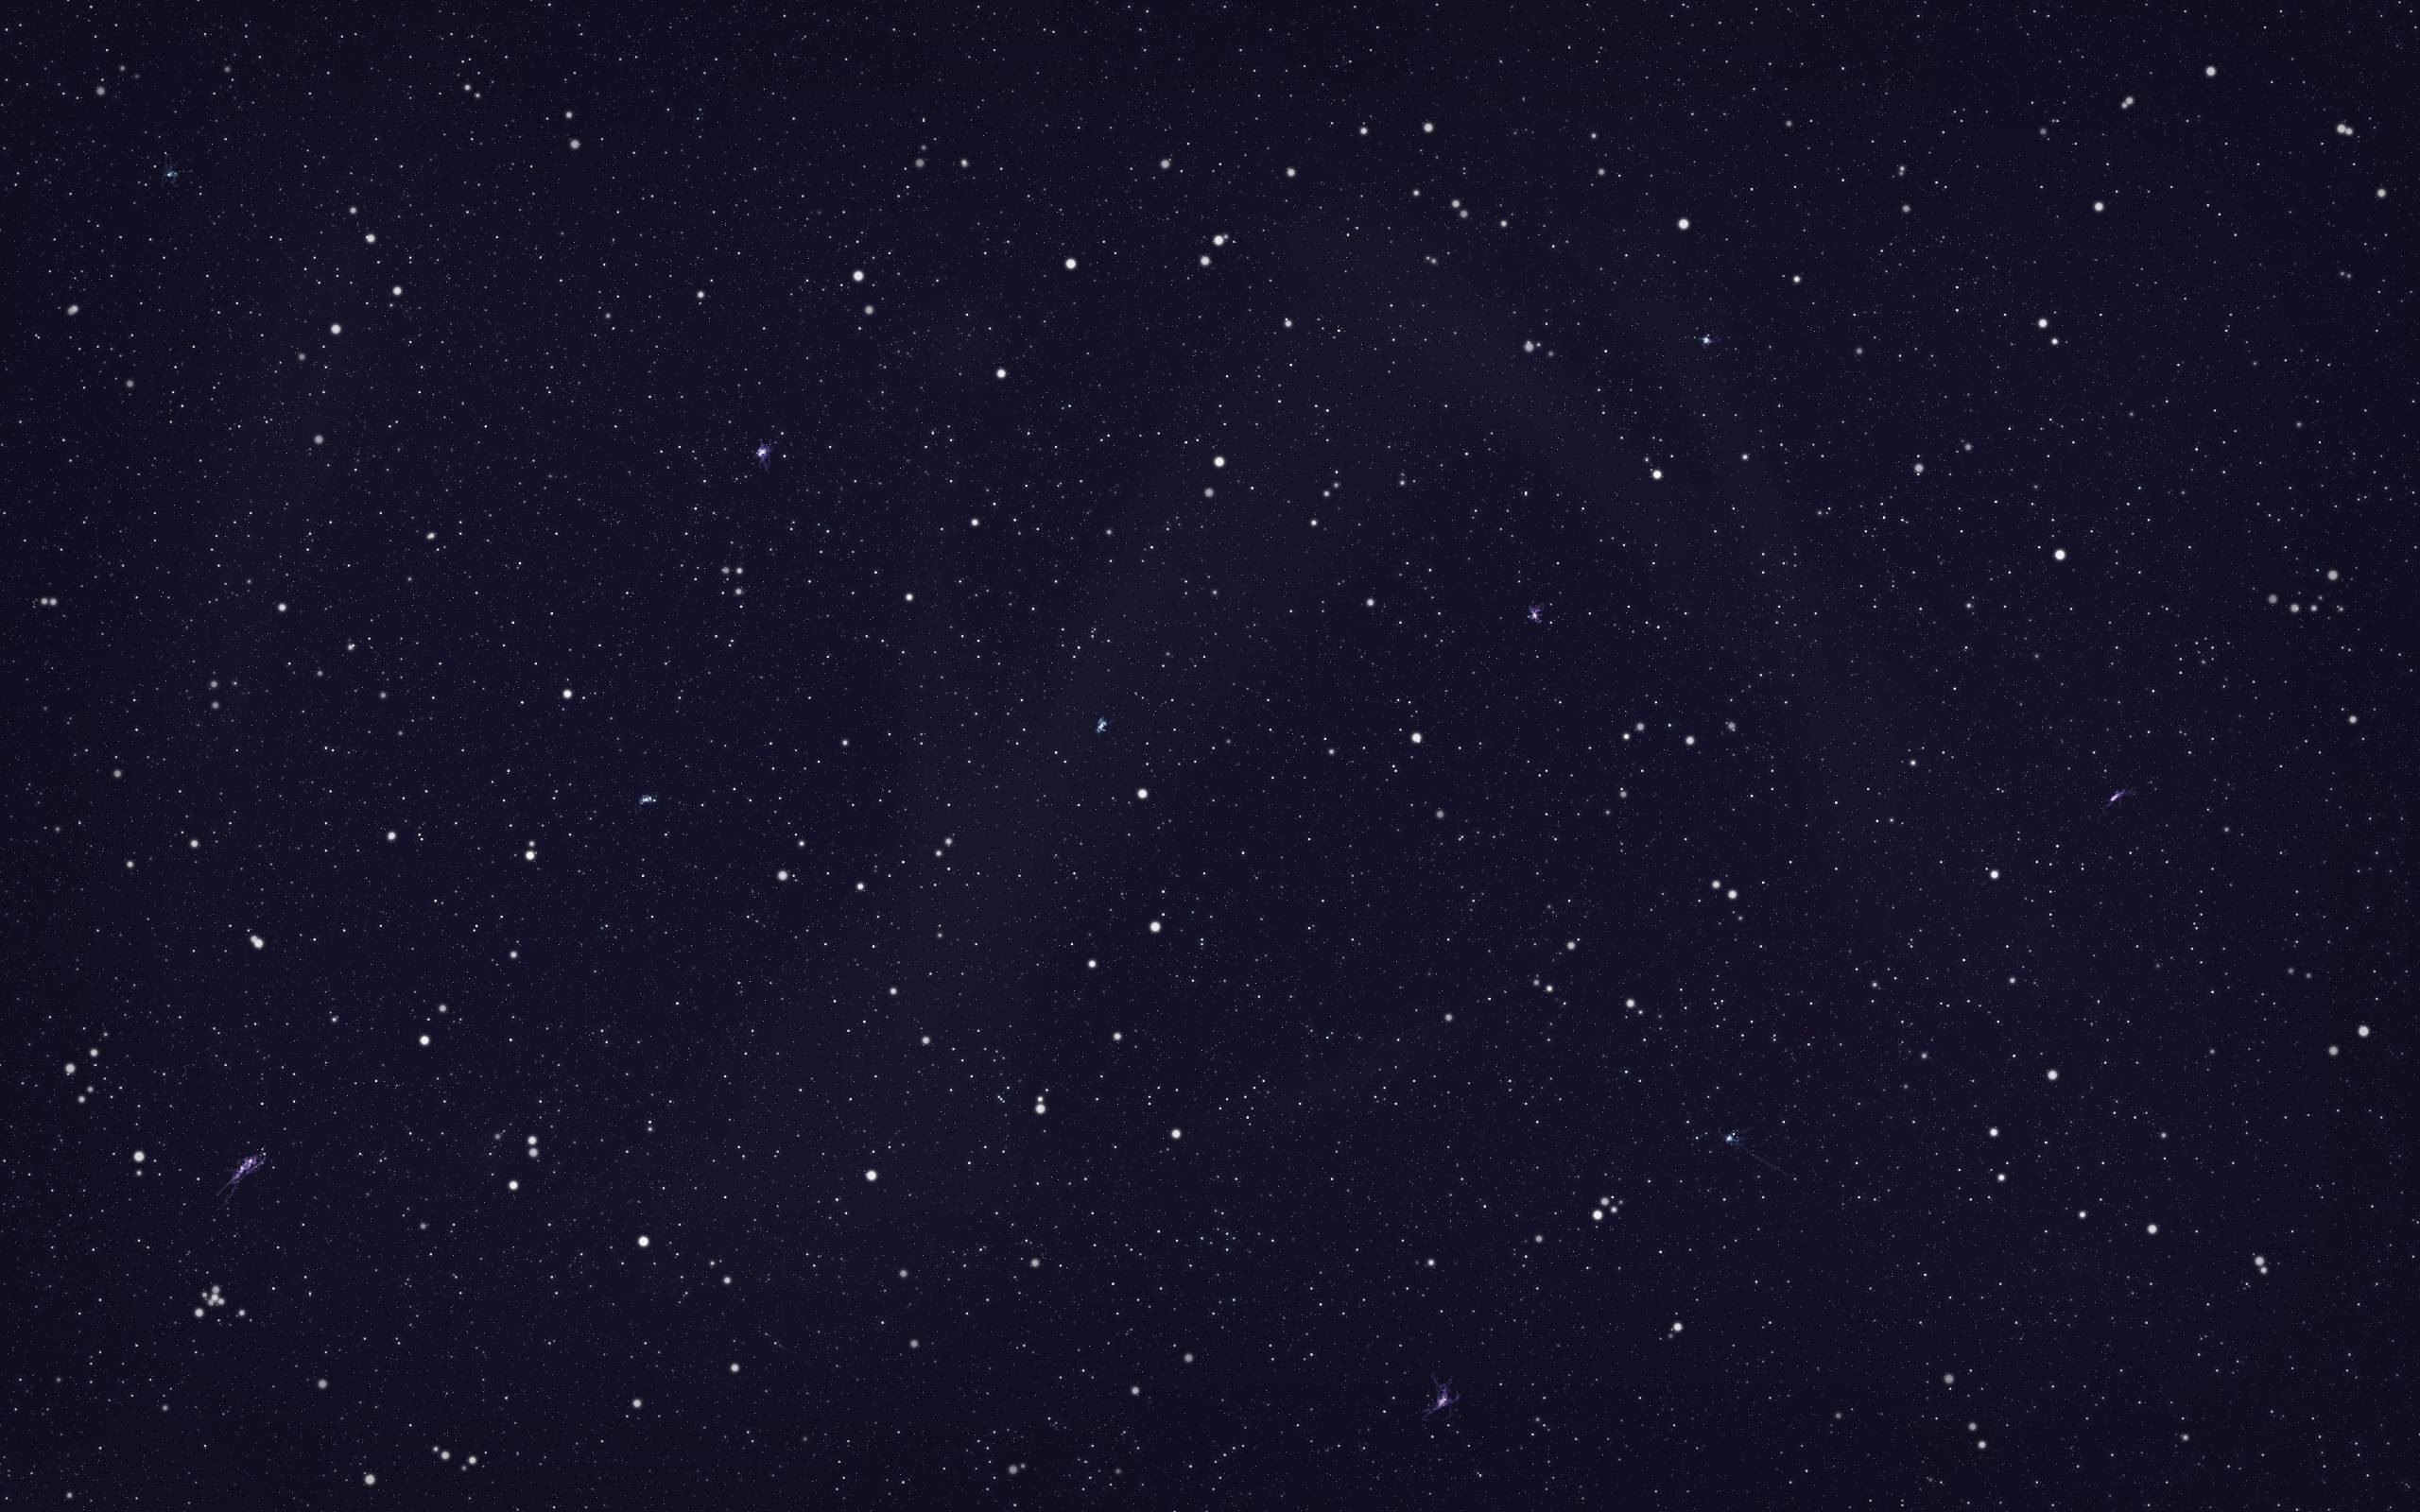 Outer Space Stars Hd Background Wallpaper 54 HD Wallpapers .